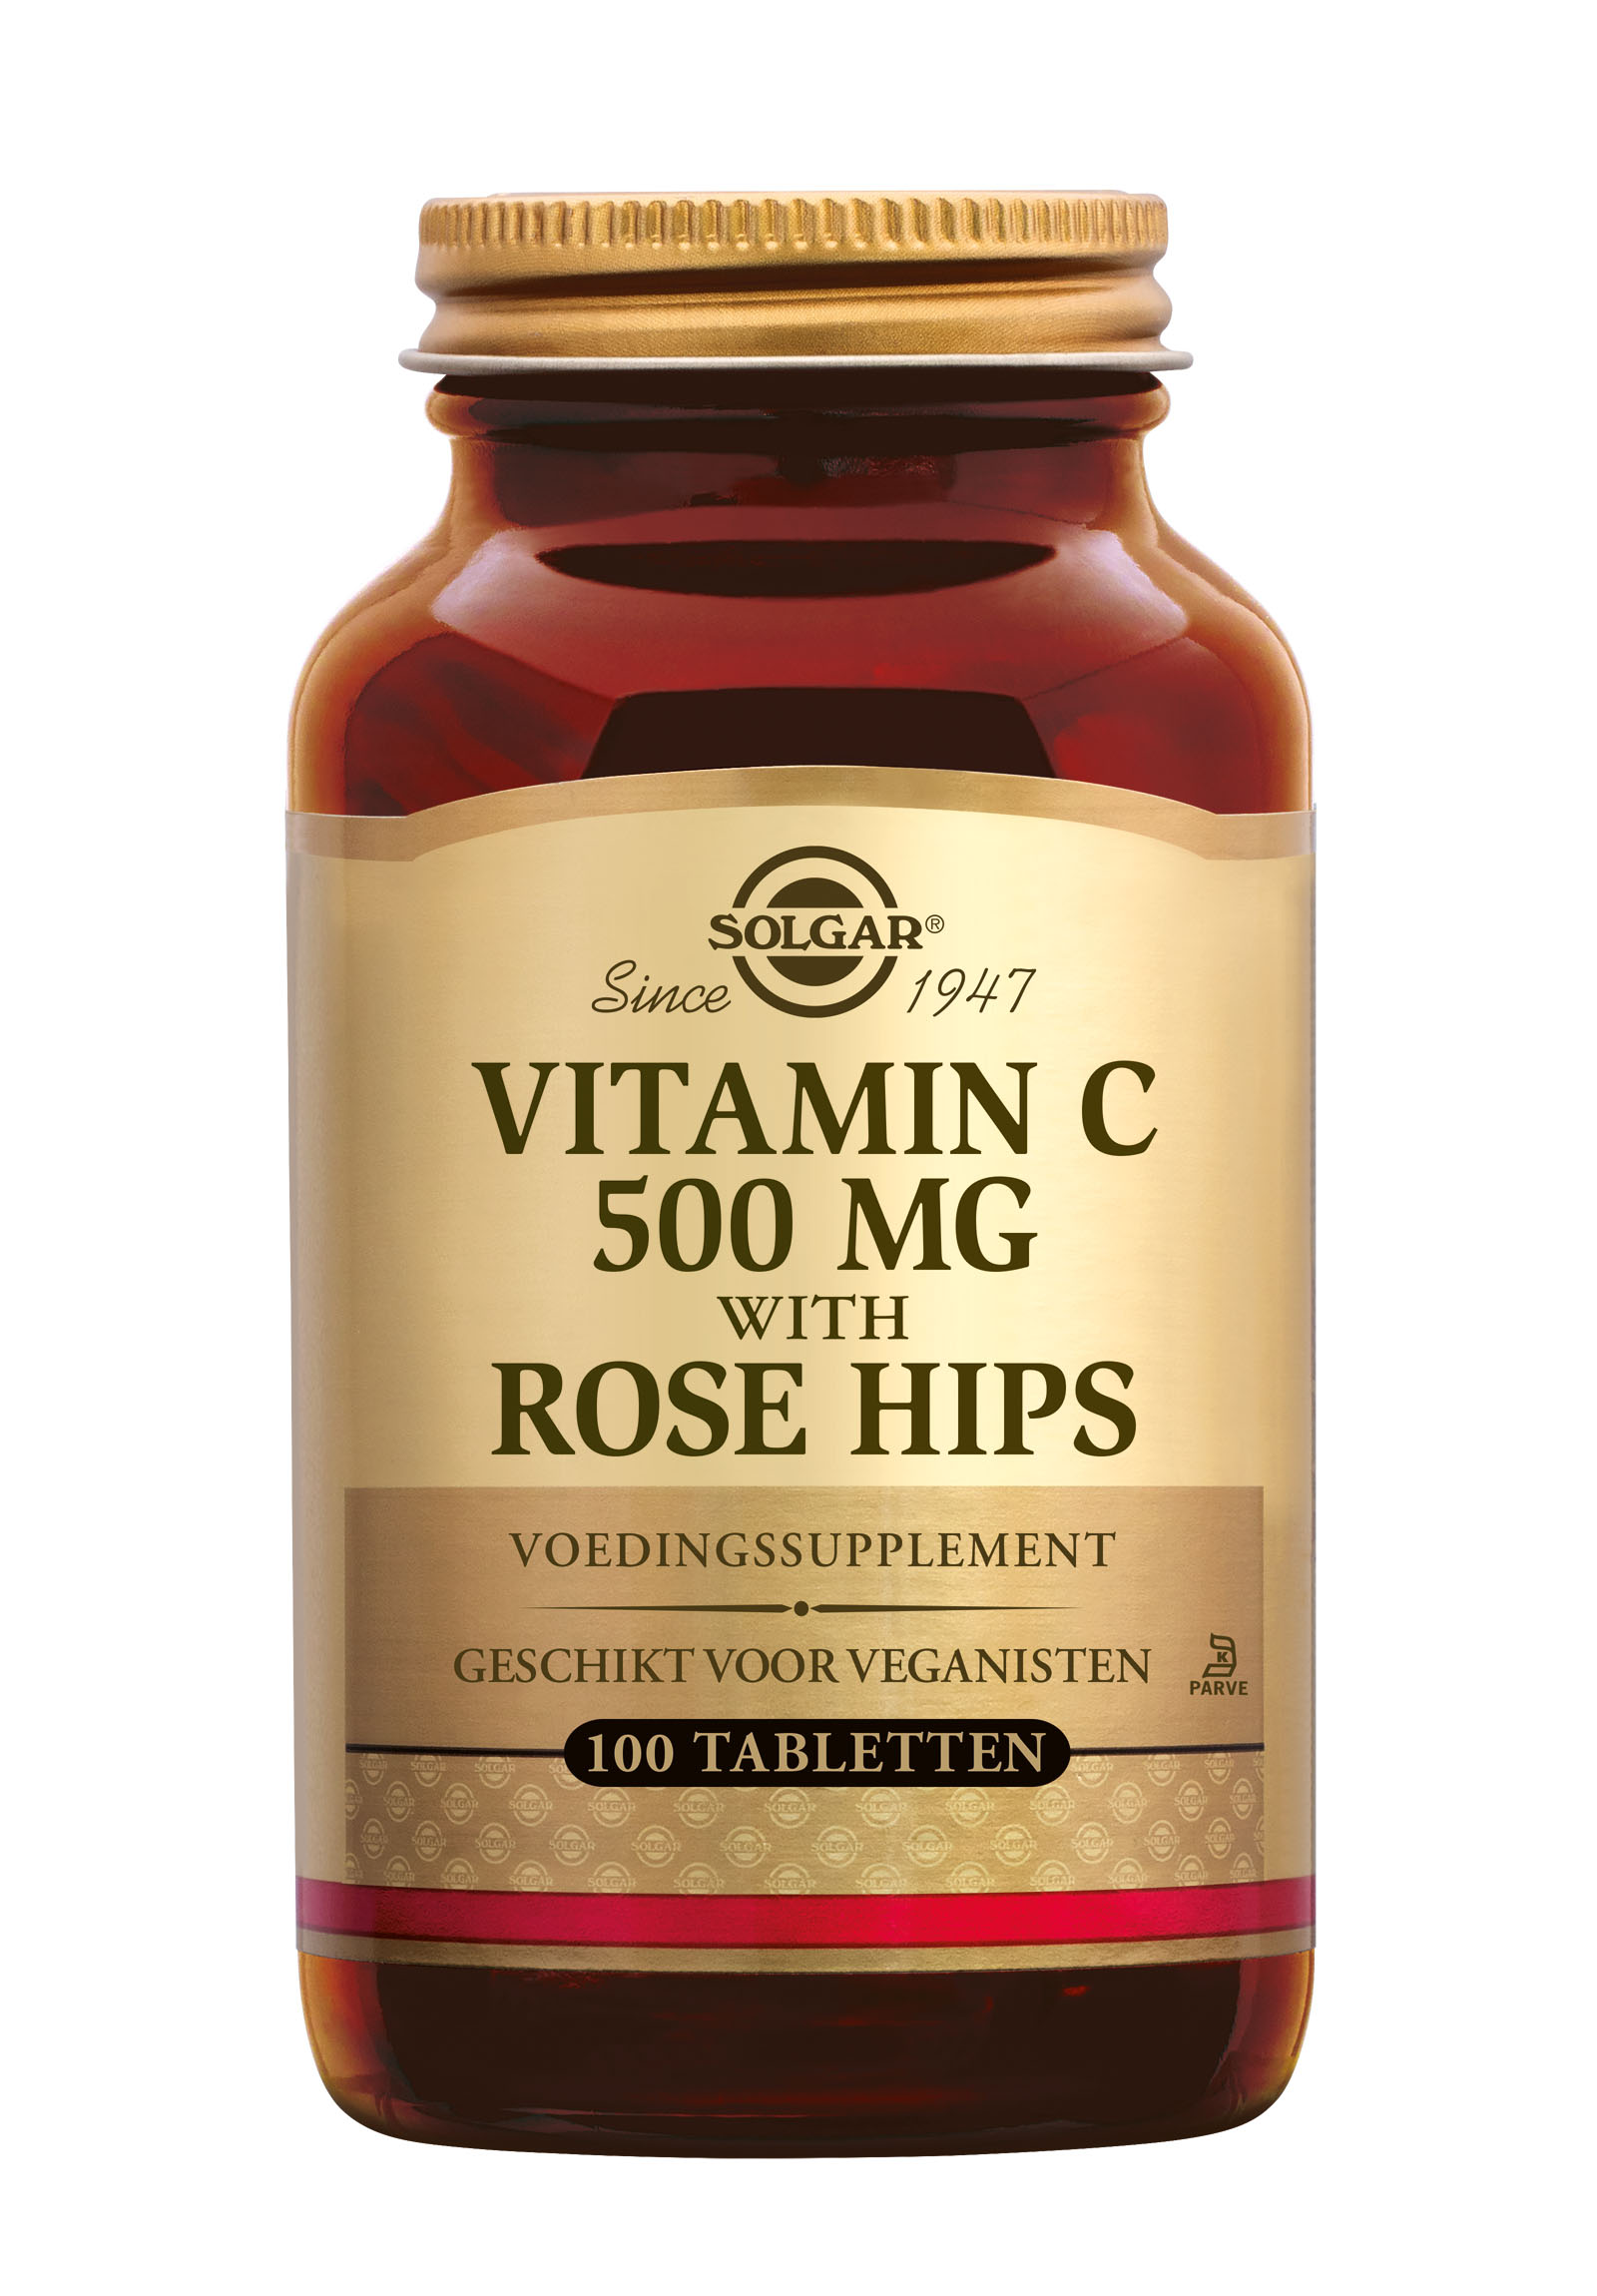 Vitamin C with Rose Hips 500 mg